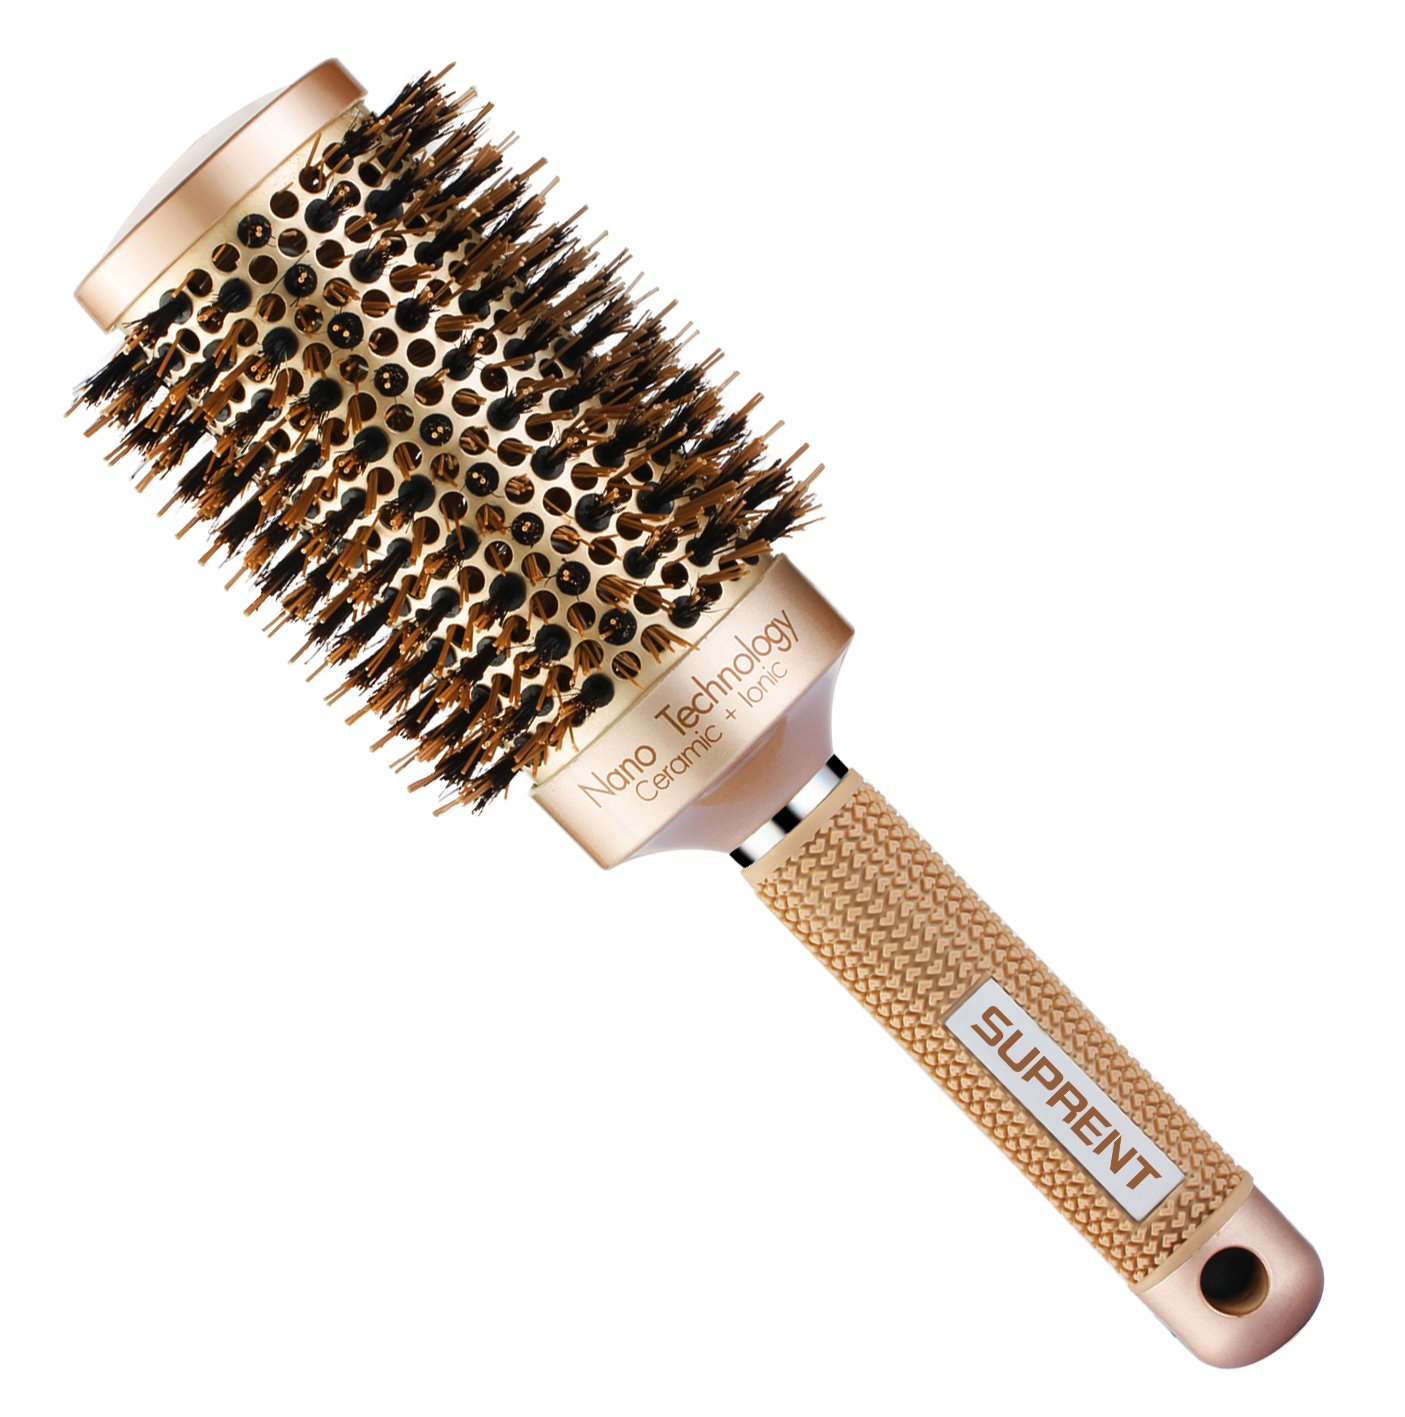 SUPRENT Nano Thermal Ceramic & Ionic Round Barrel Hair Brush with Boar Bristle, 2 inch, for Hair Drying, Styling, Curling, Adding Hair Volume and Shine, Gold Color(2 inch)